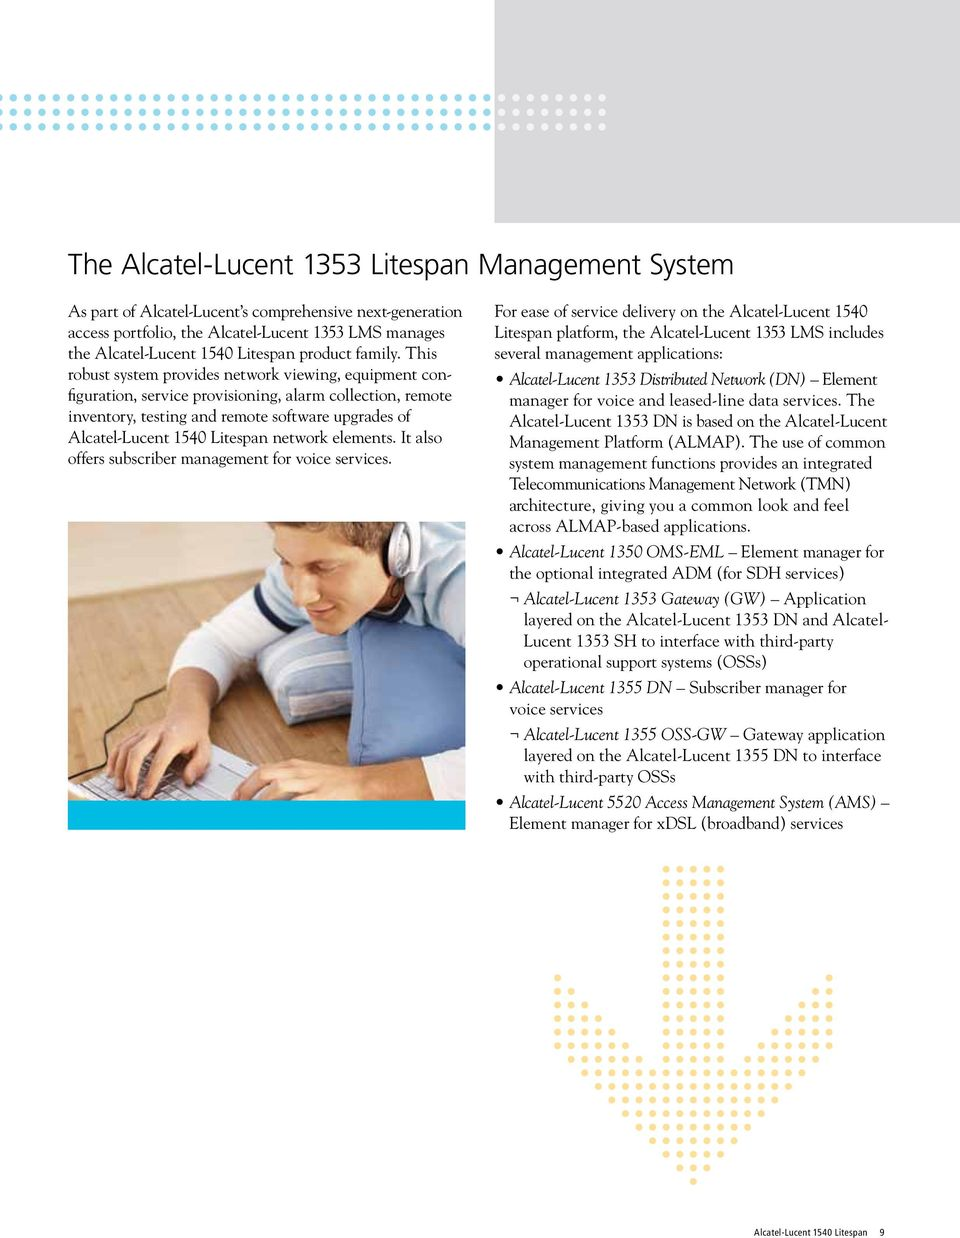 This robust system provides network viewing, equipment configuration, service provisioning, alarm collection, remote inventory, testing and remote software upgrades of Alcatel-Lucent 1540 Litespan